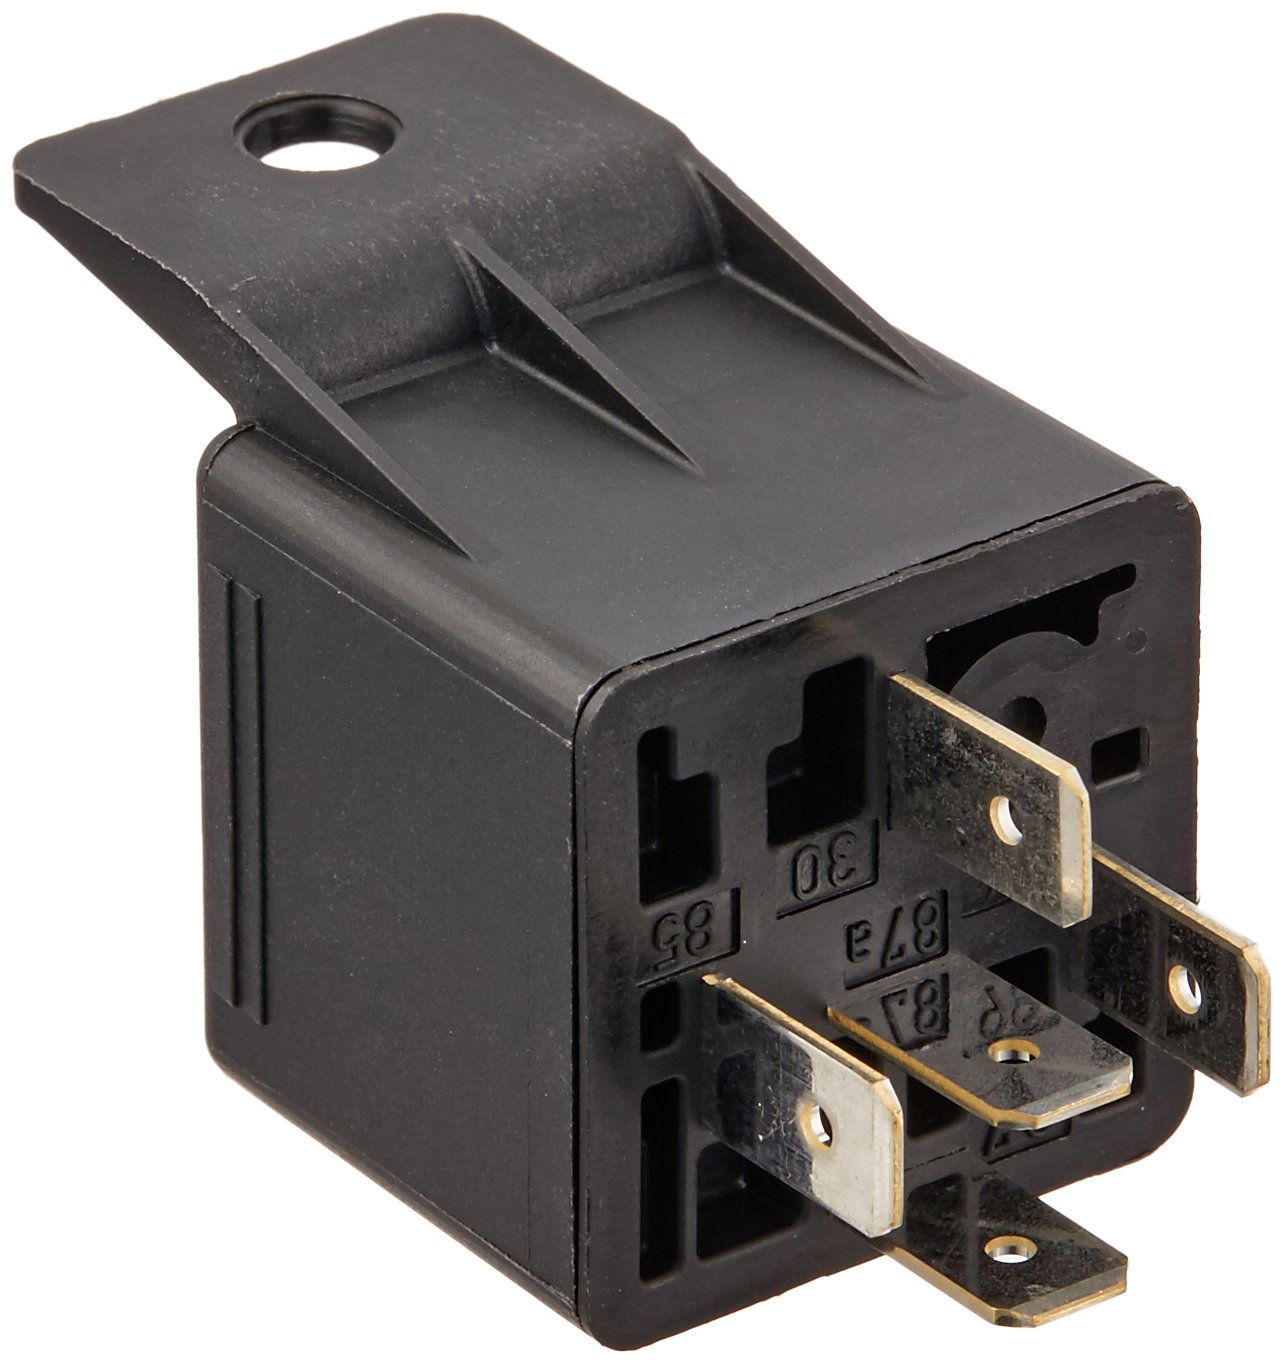 Amazon.com: Metra Install E-123 Bay Tyco Relay 12 Volt 30 Amp Each ...